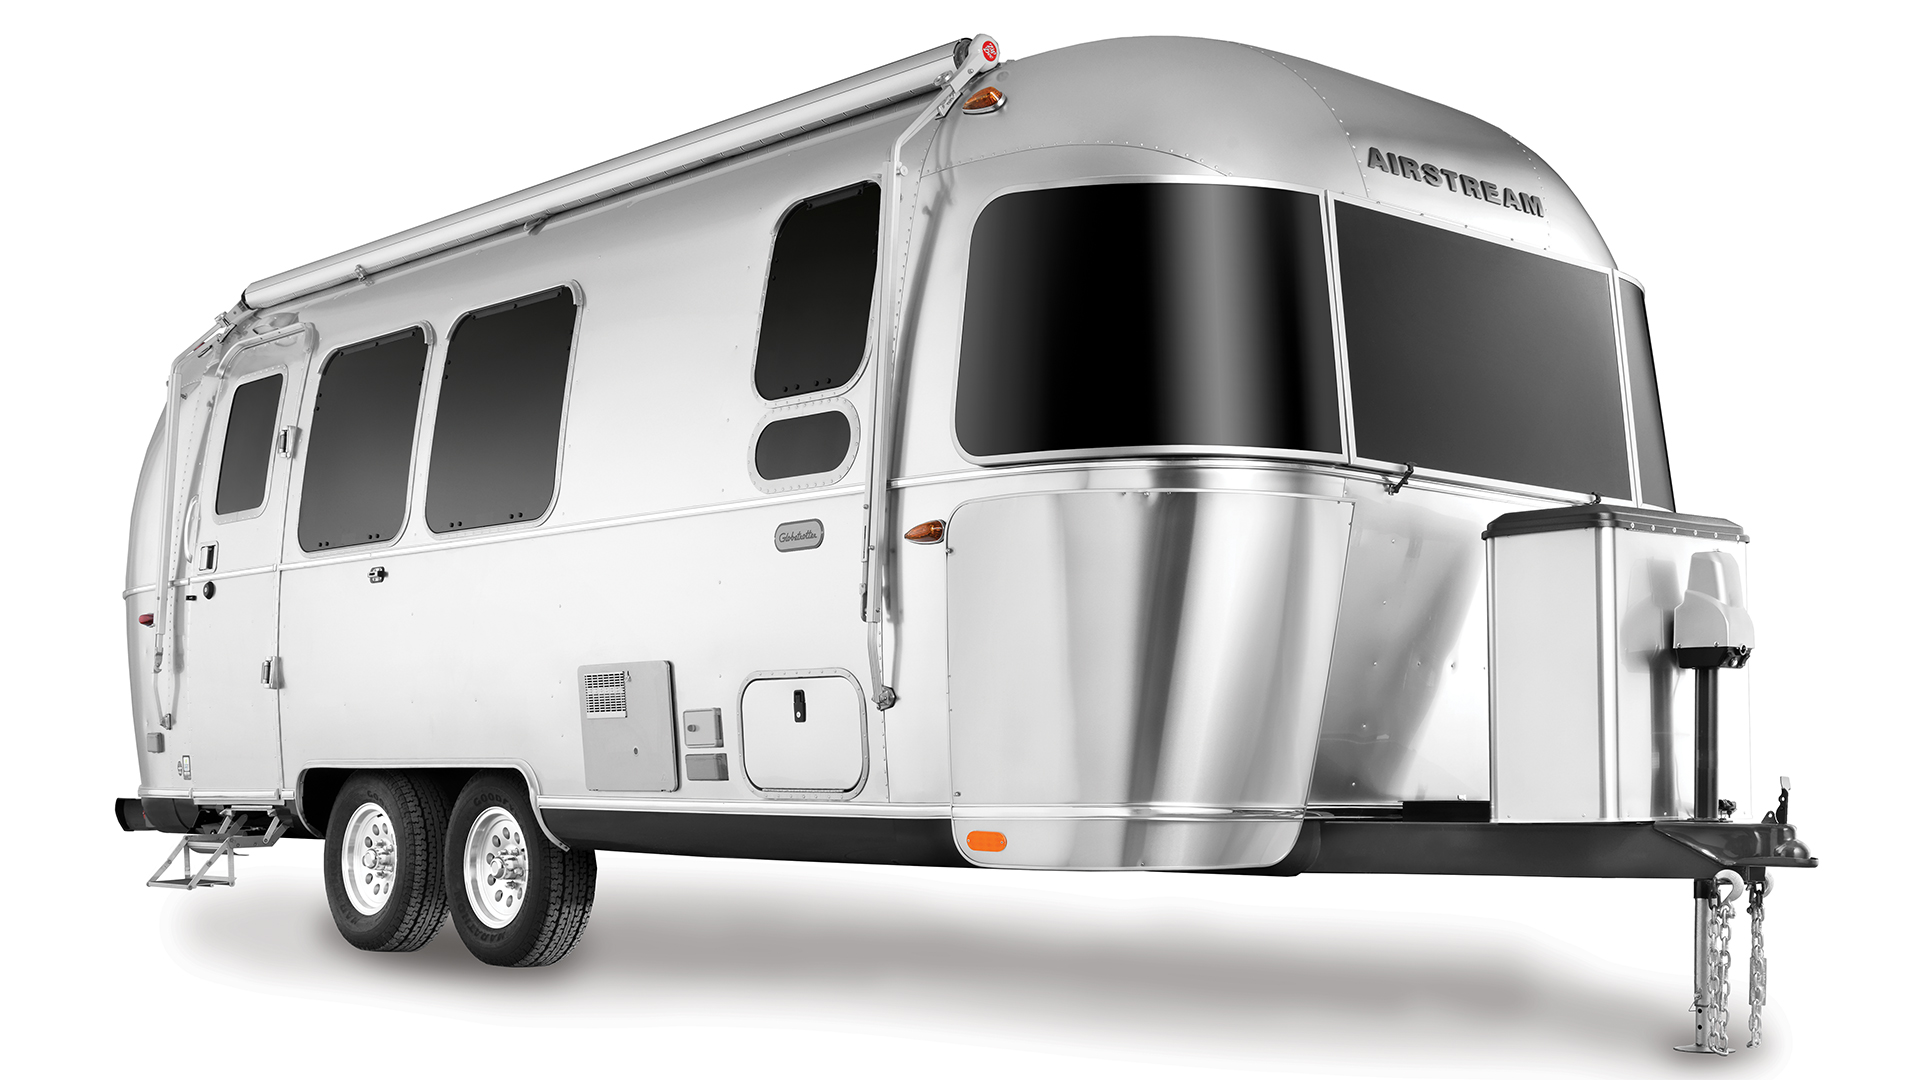 Airstream Globetrotter 23FB Travel Trailer